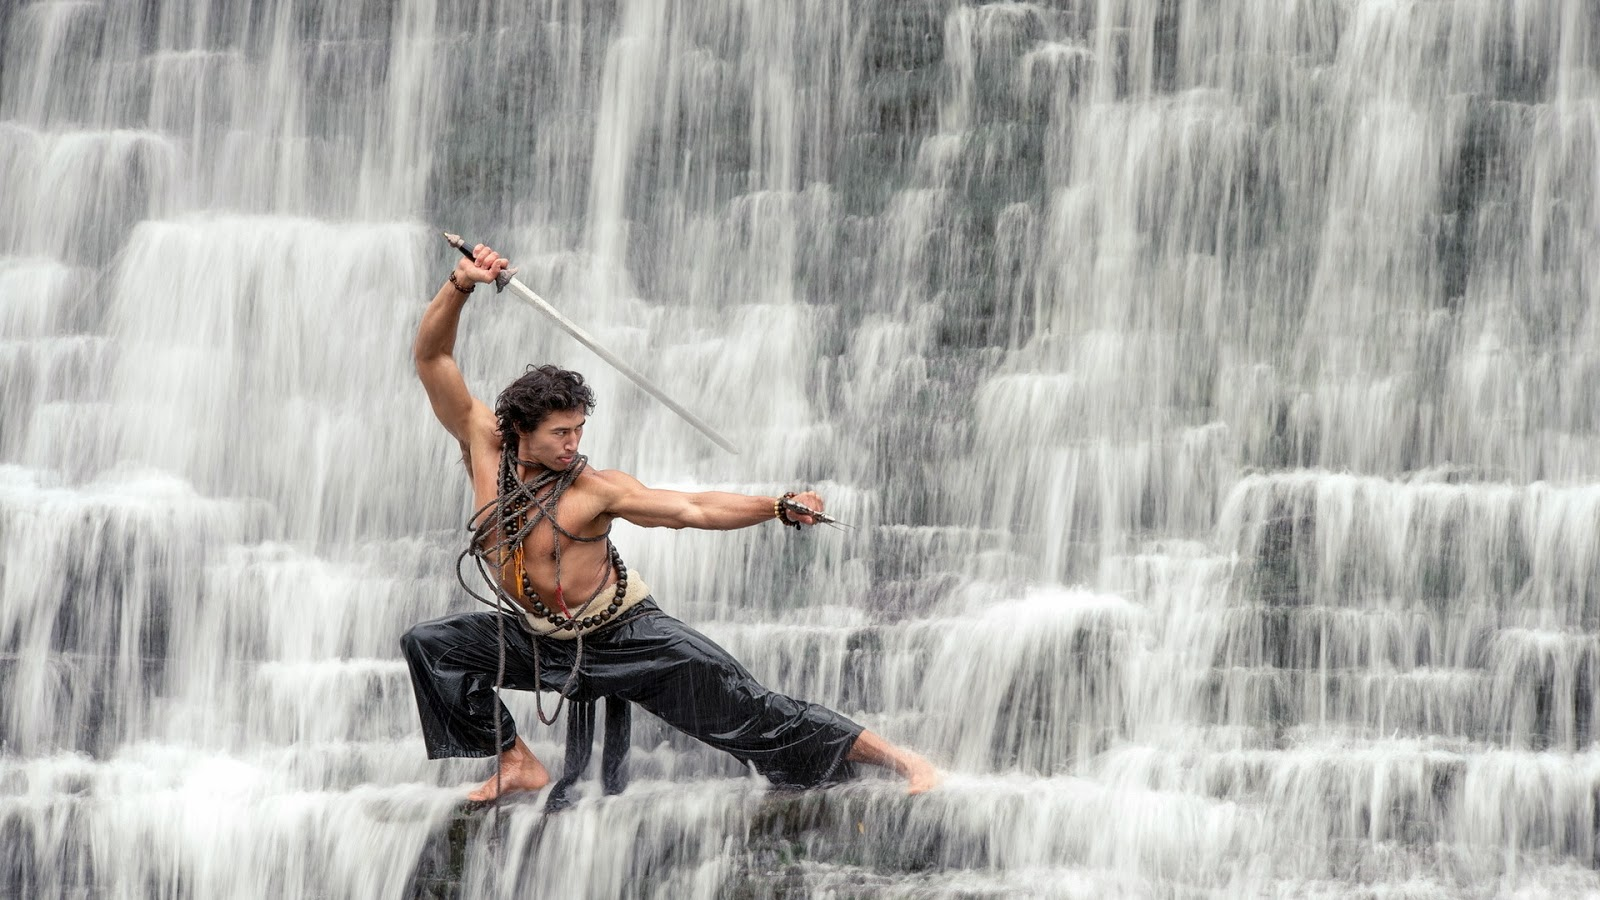 Free Download Martial Arts Hd Wallpapers Hd Wallpapers 360